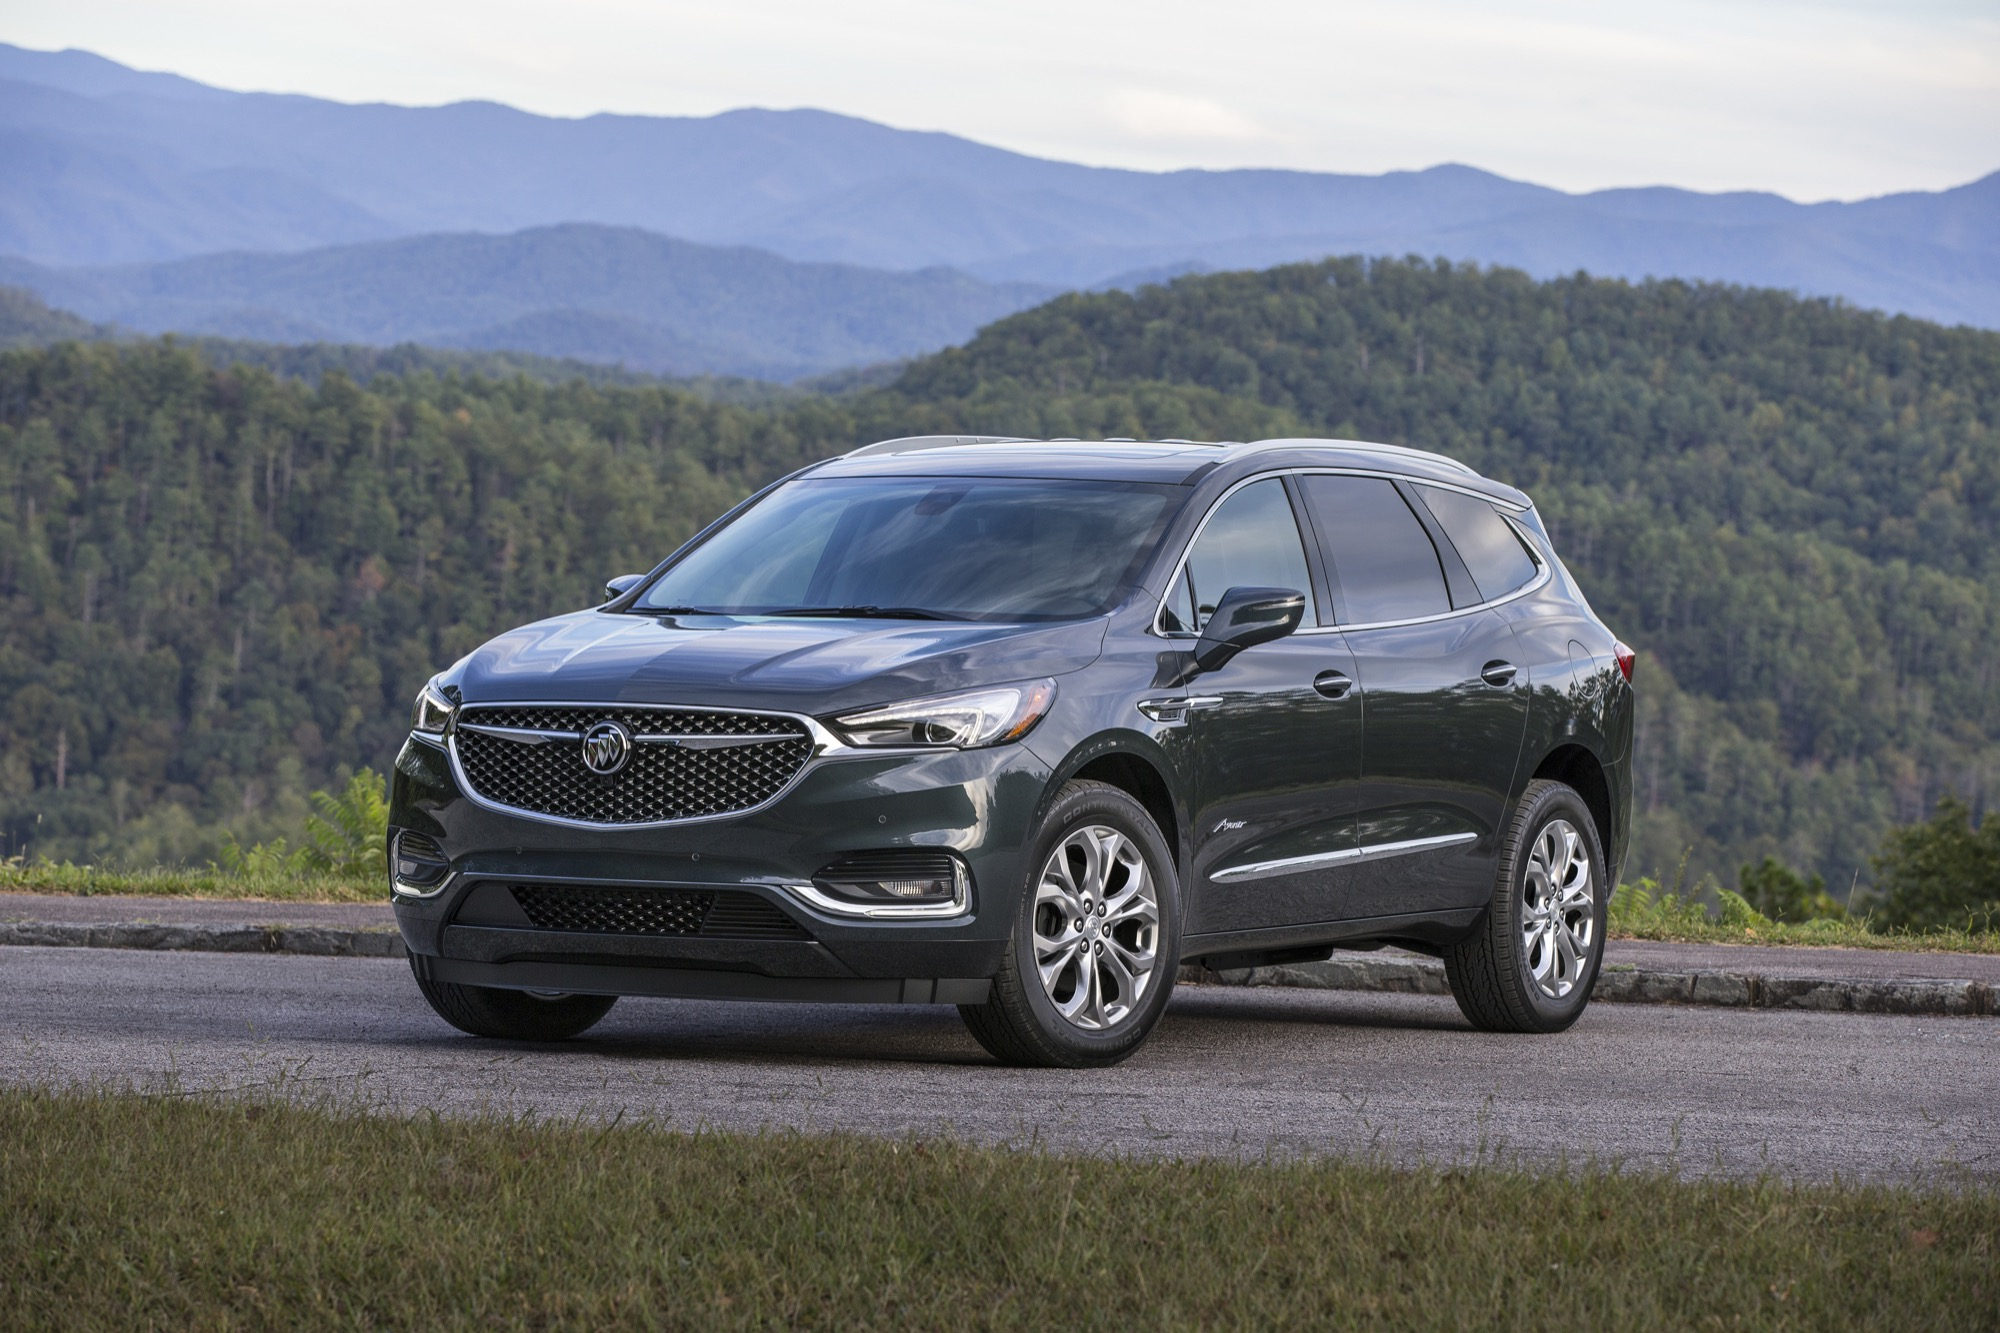 New Buick Discount Cuts Enclave Price13% September 2019 2022 Buick Enclave Awd, Build, Lease